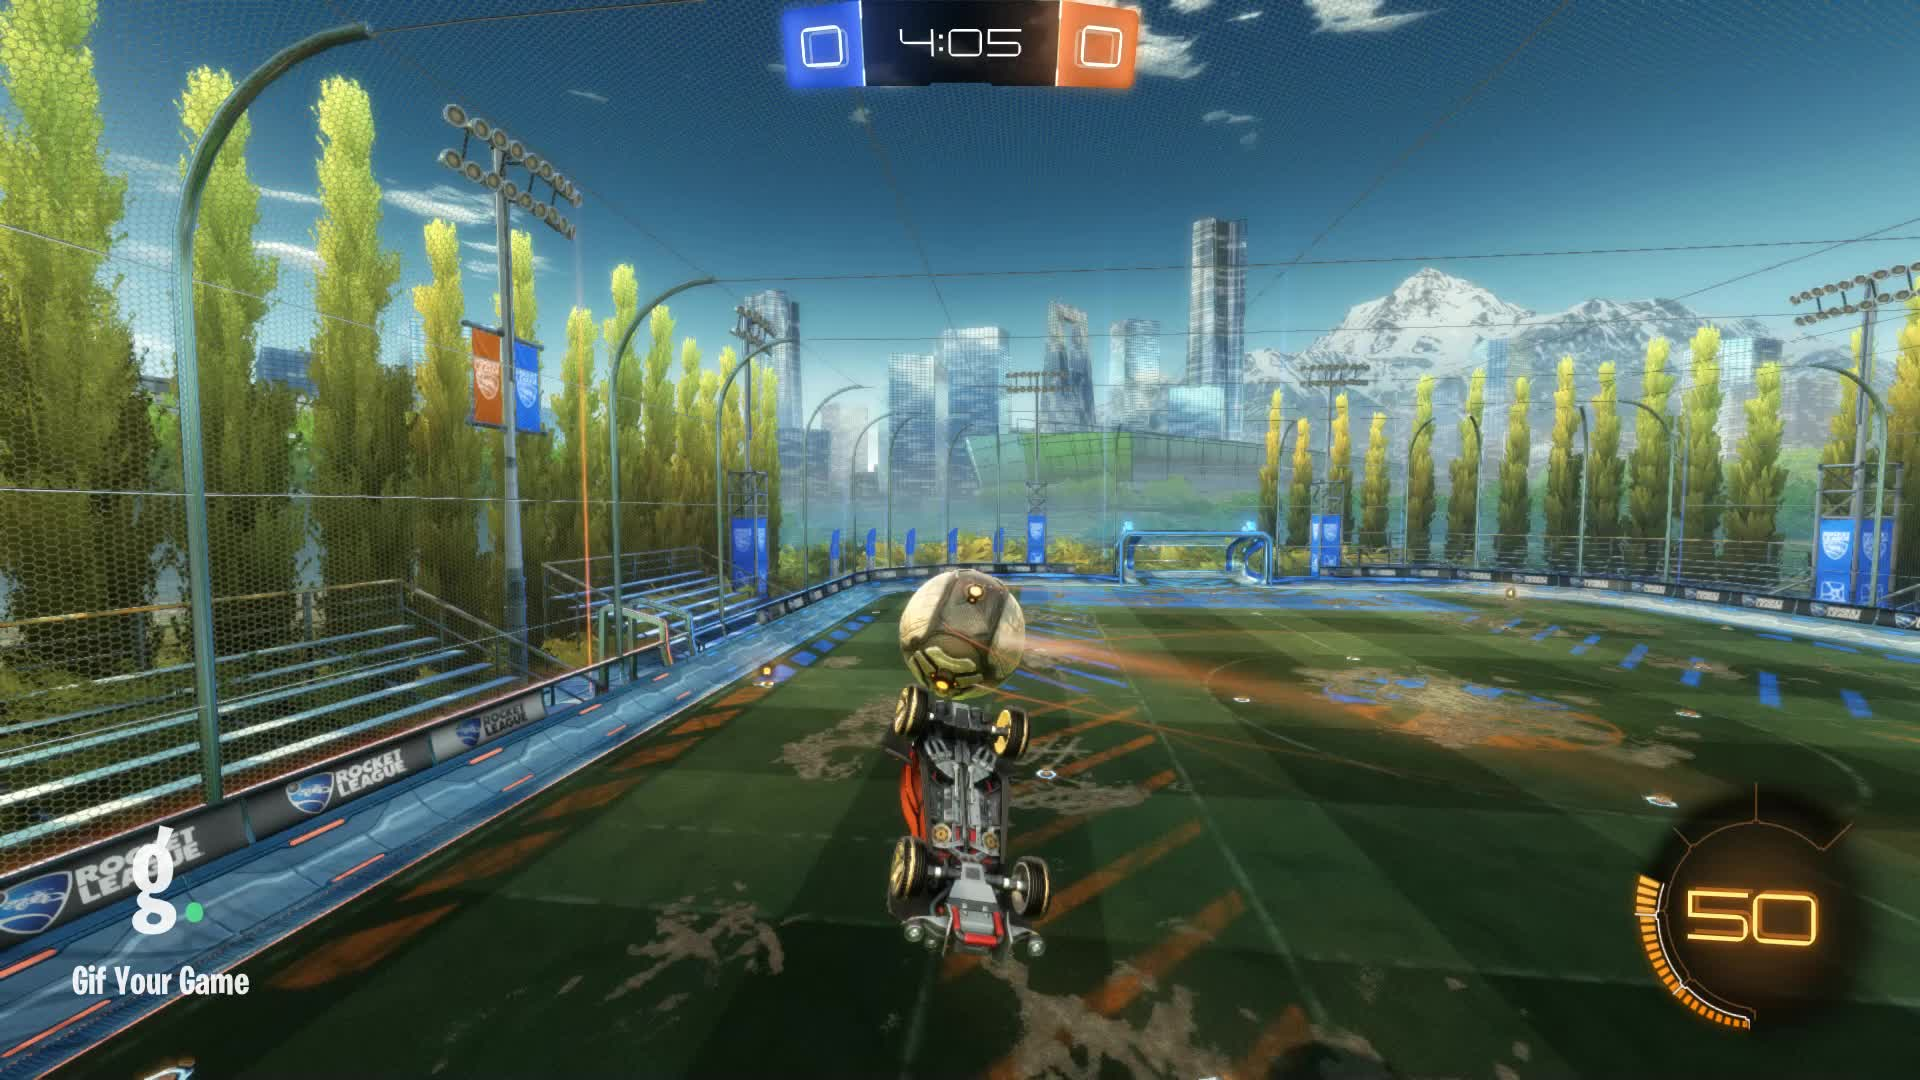 Gif Your Game, GifYourGame, Goal, ItWas...Justified, Rocket League, RocketLeague, Goal 1: ItWas...Justified GIFs